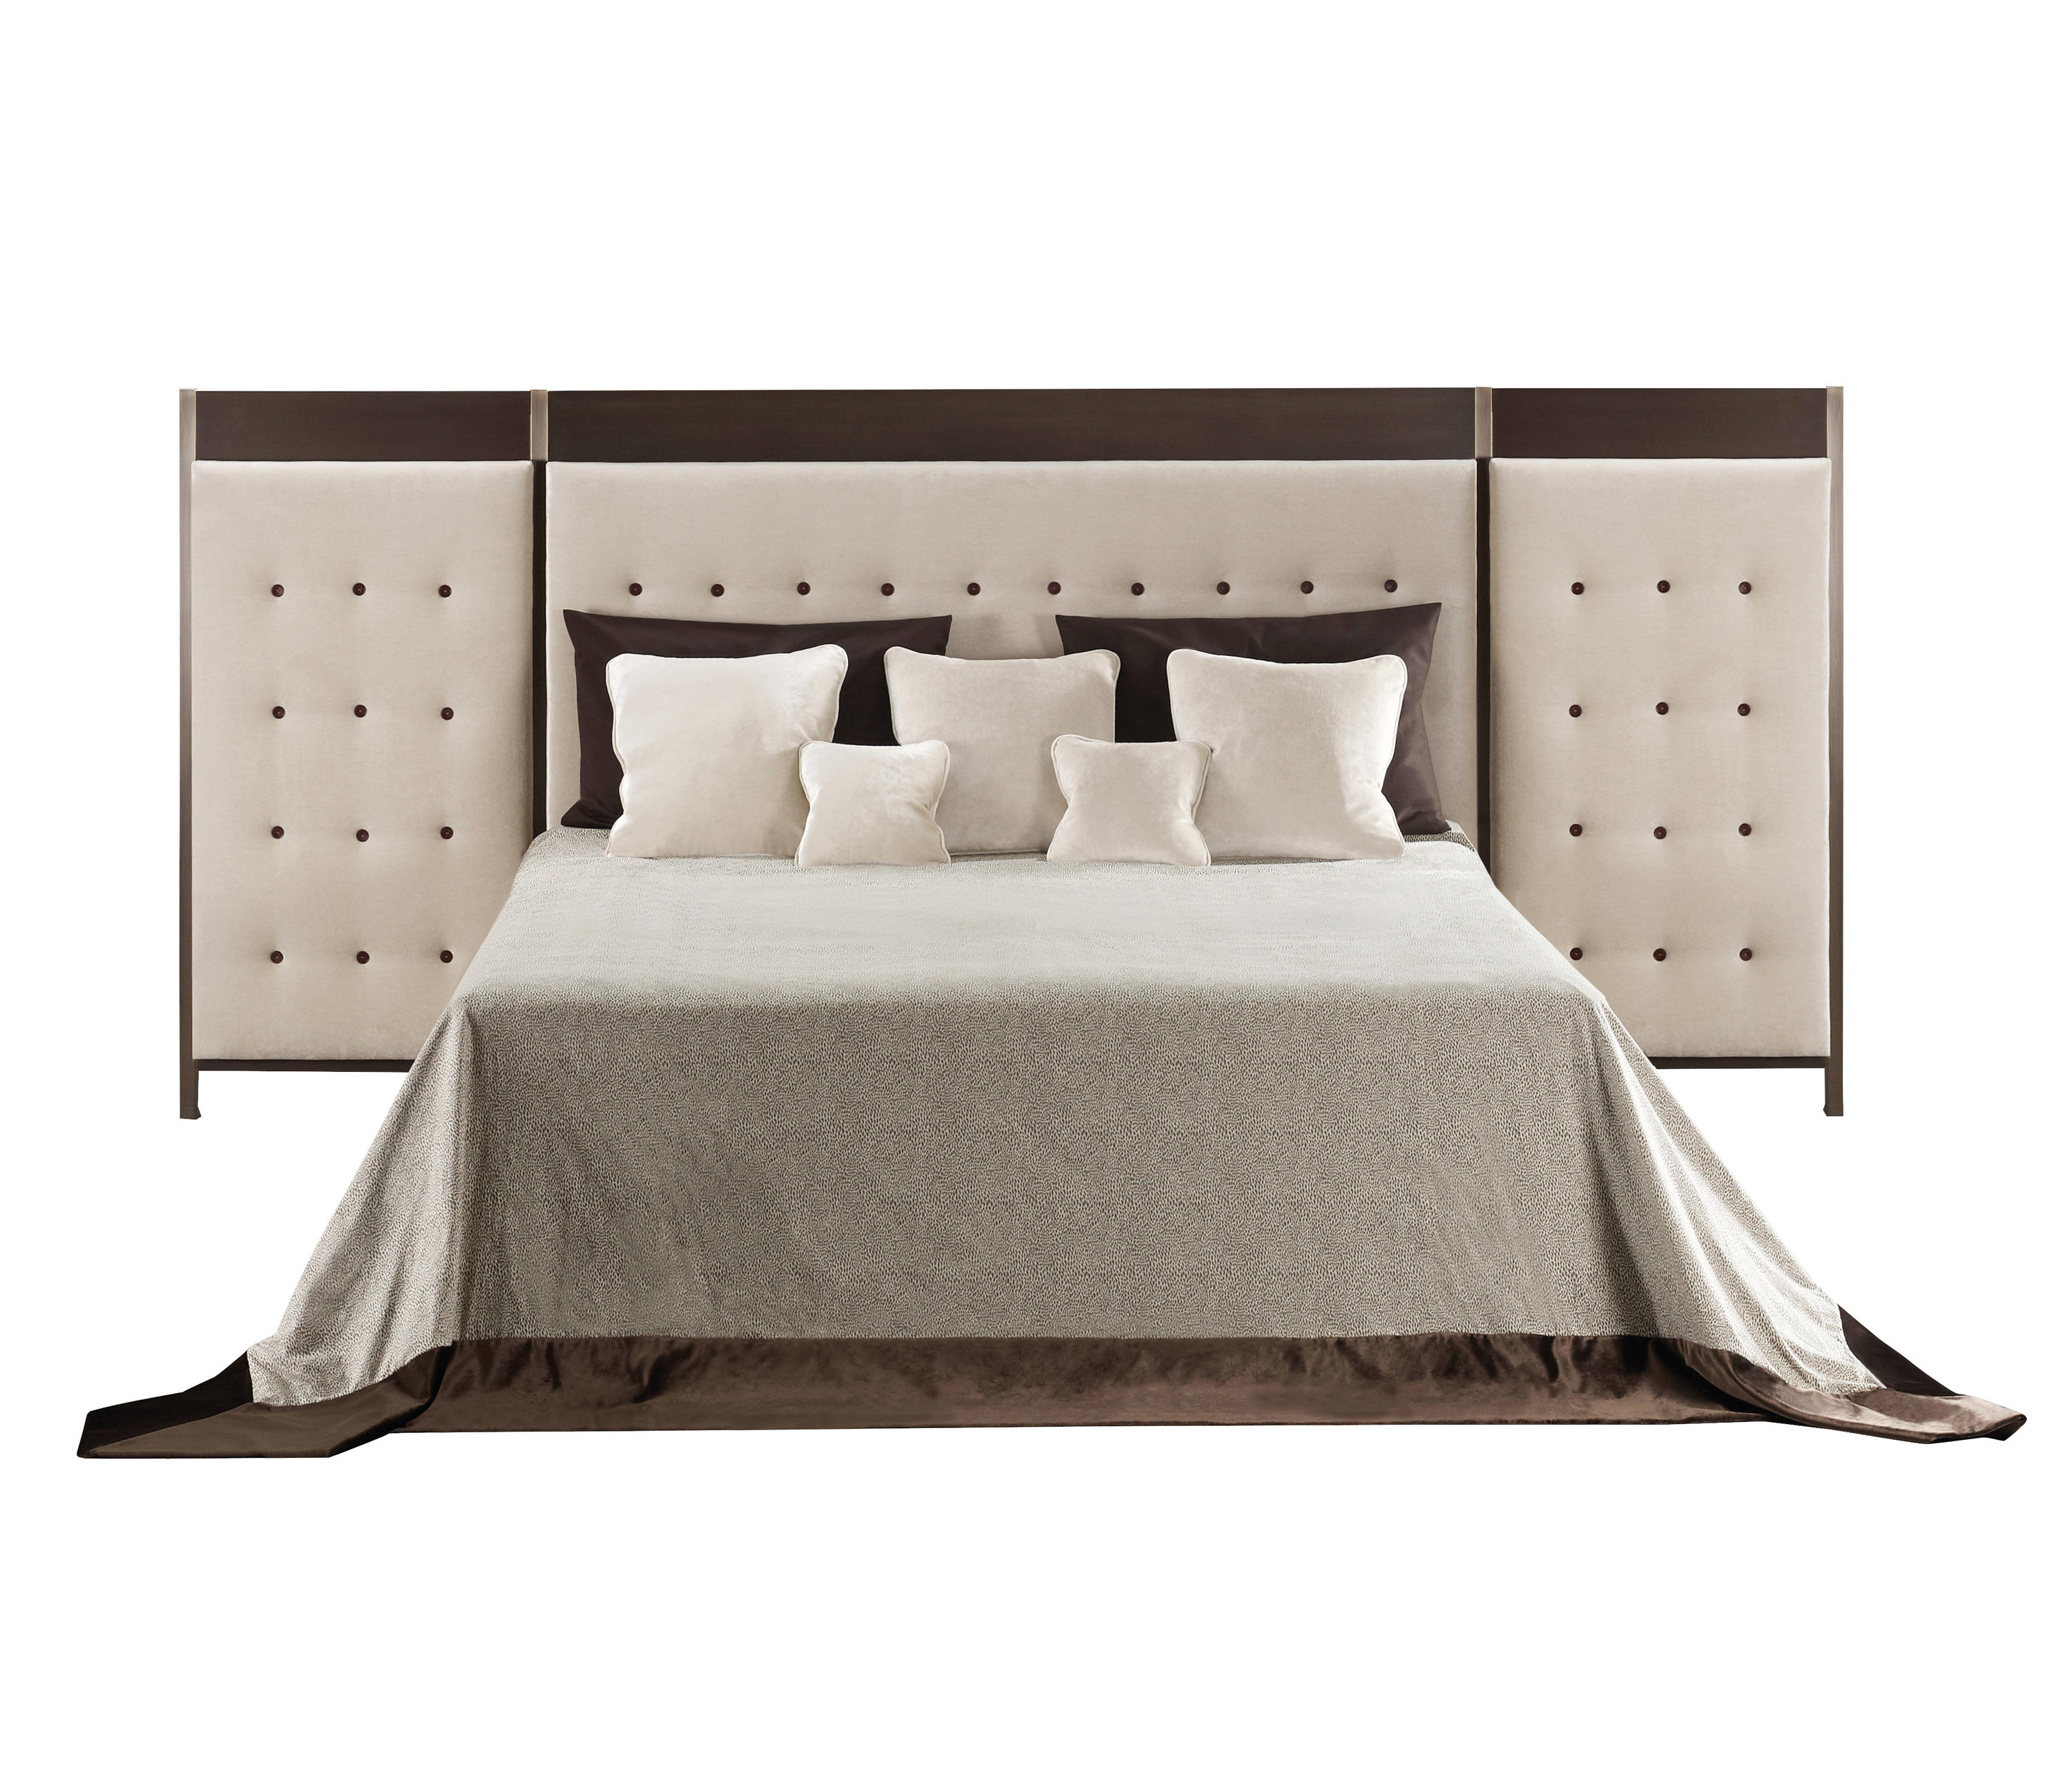 Gong Headboard Bed Headboards From Promemoria Architonic